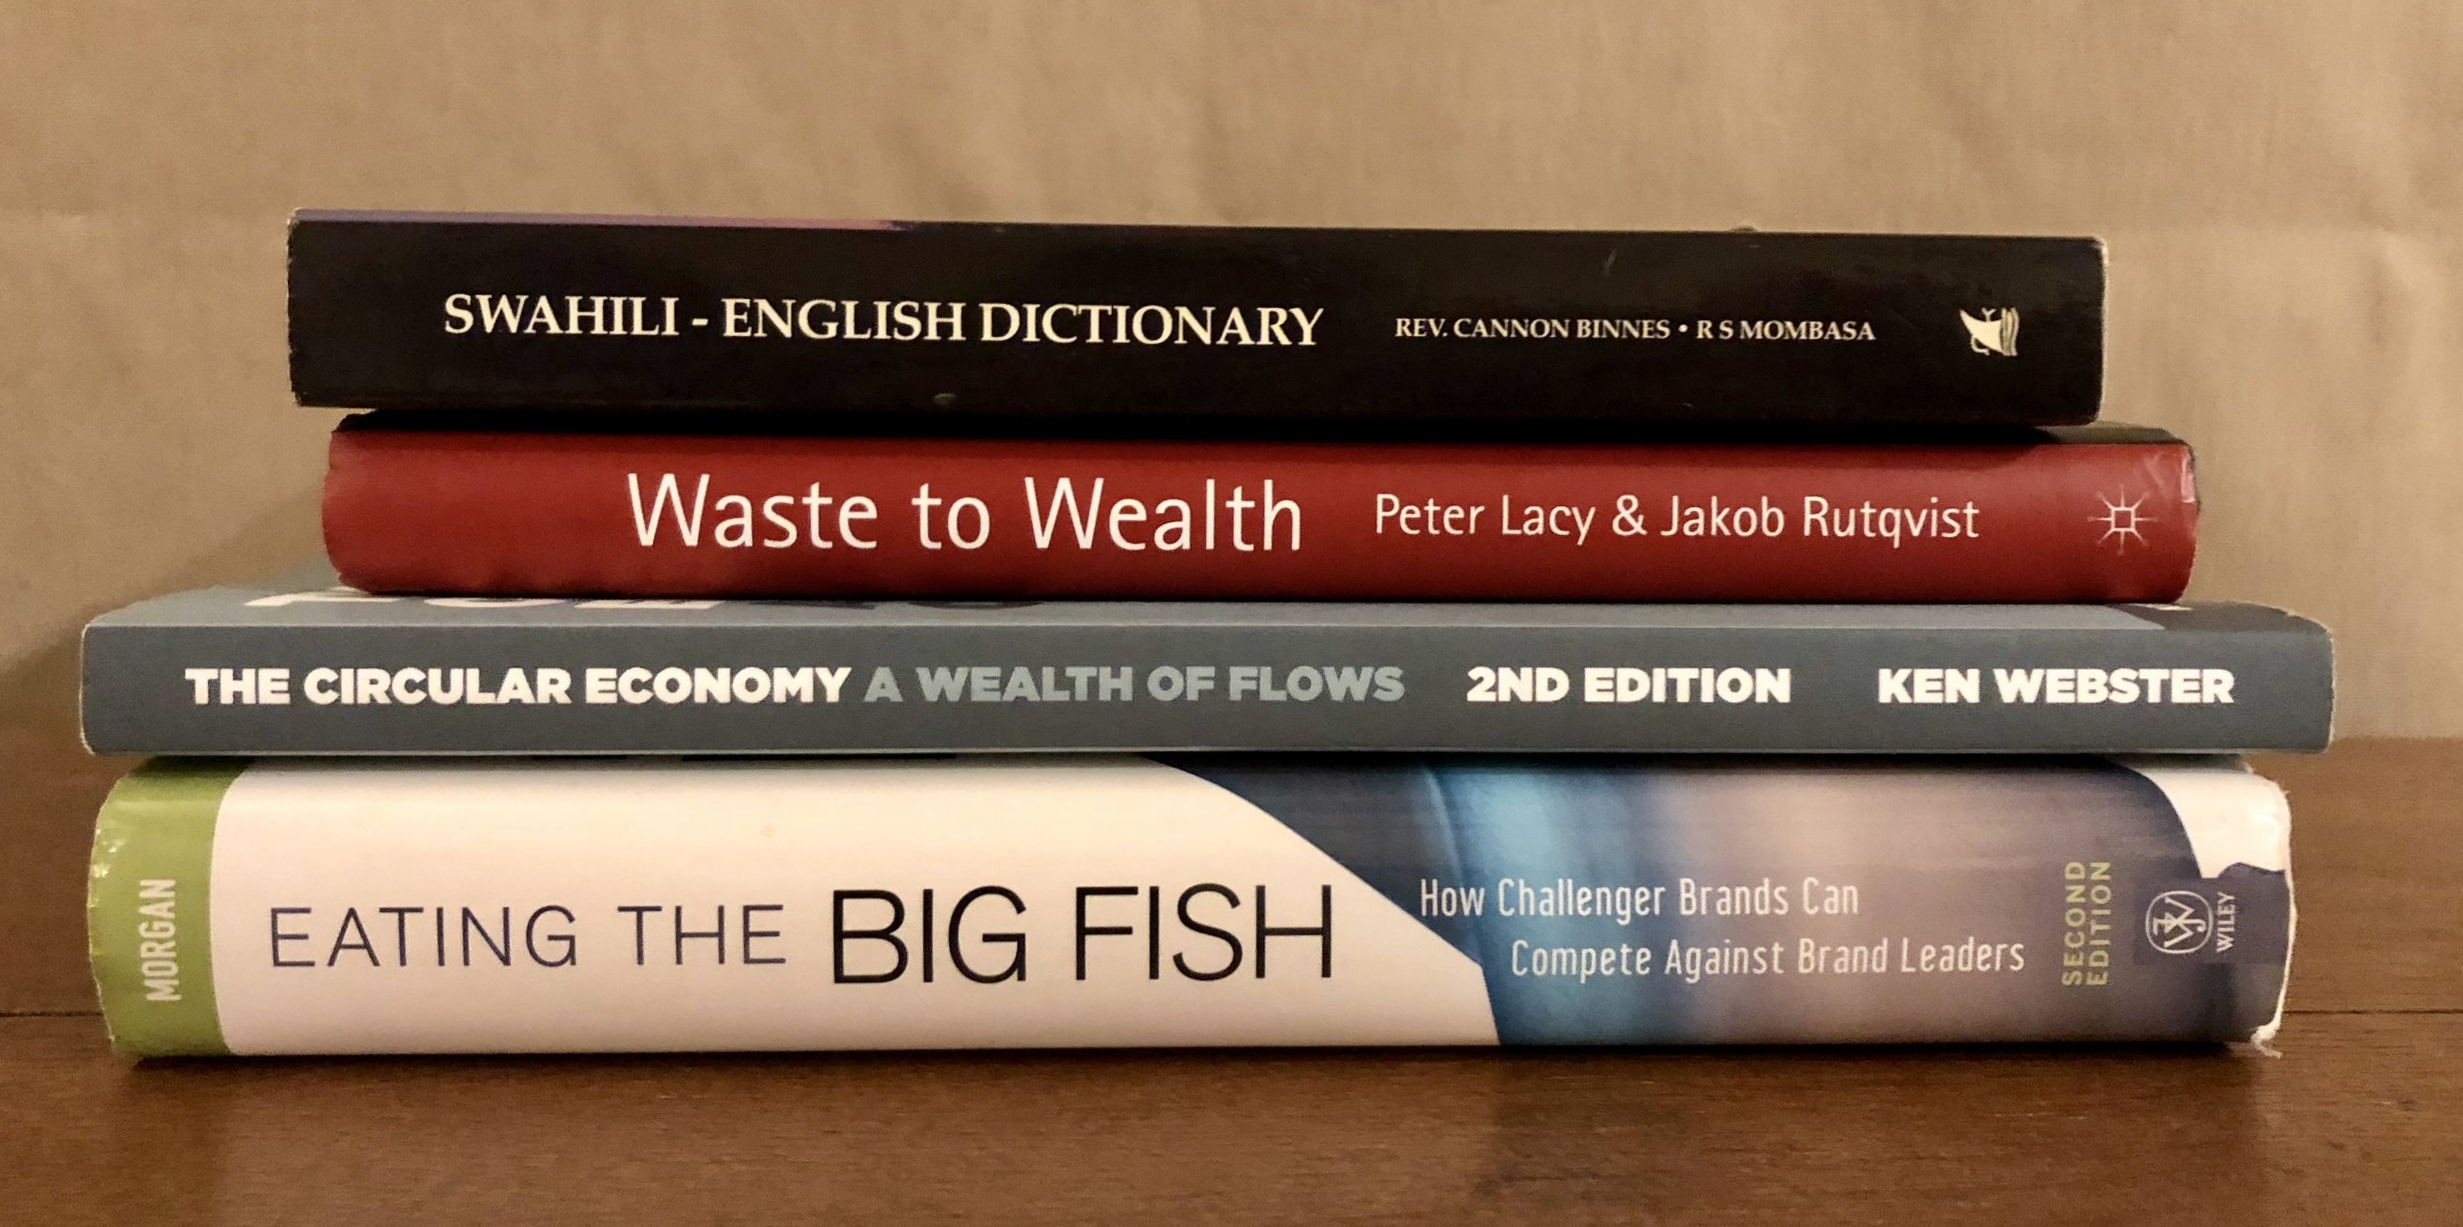 holiday reading #circulareconomy #challengerbrand #languagerefresher